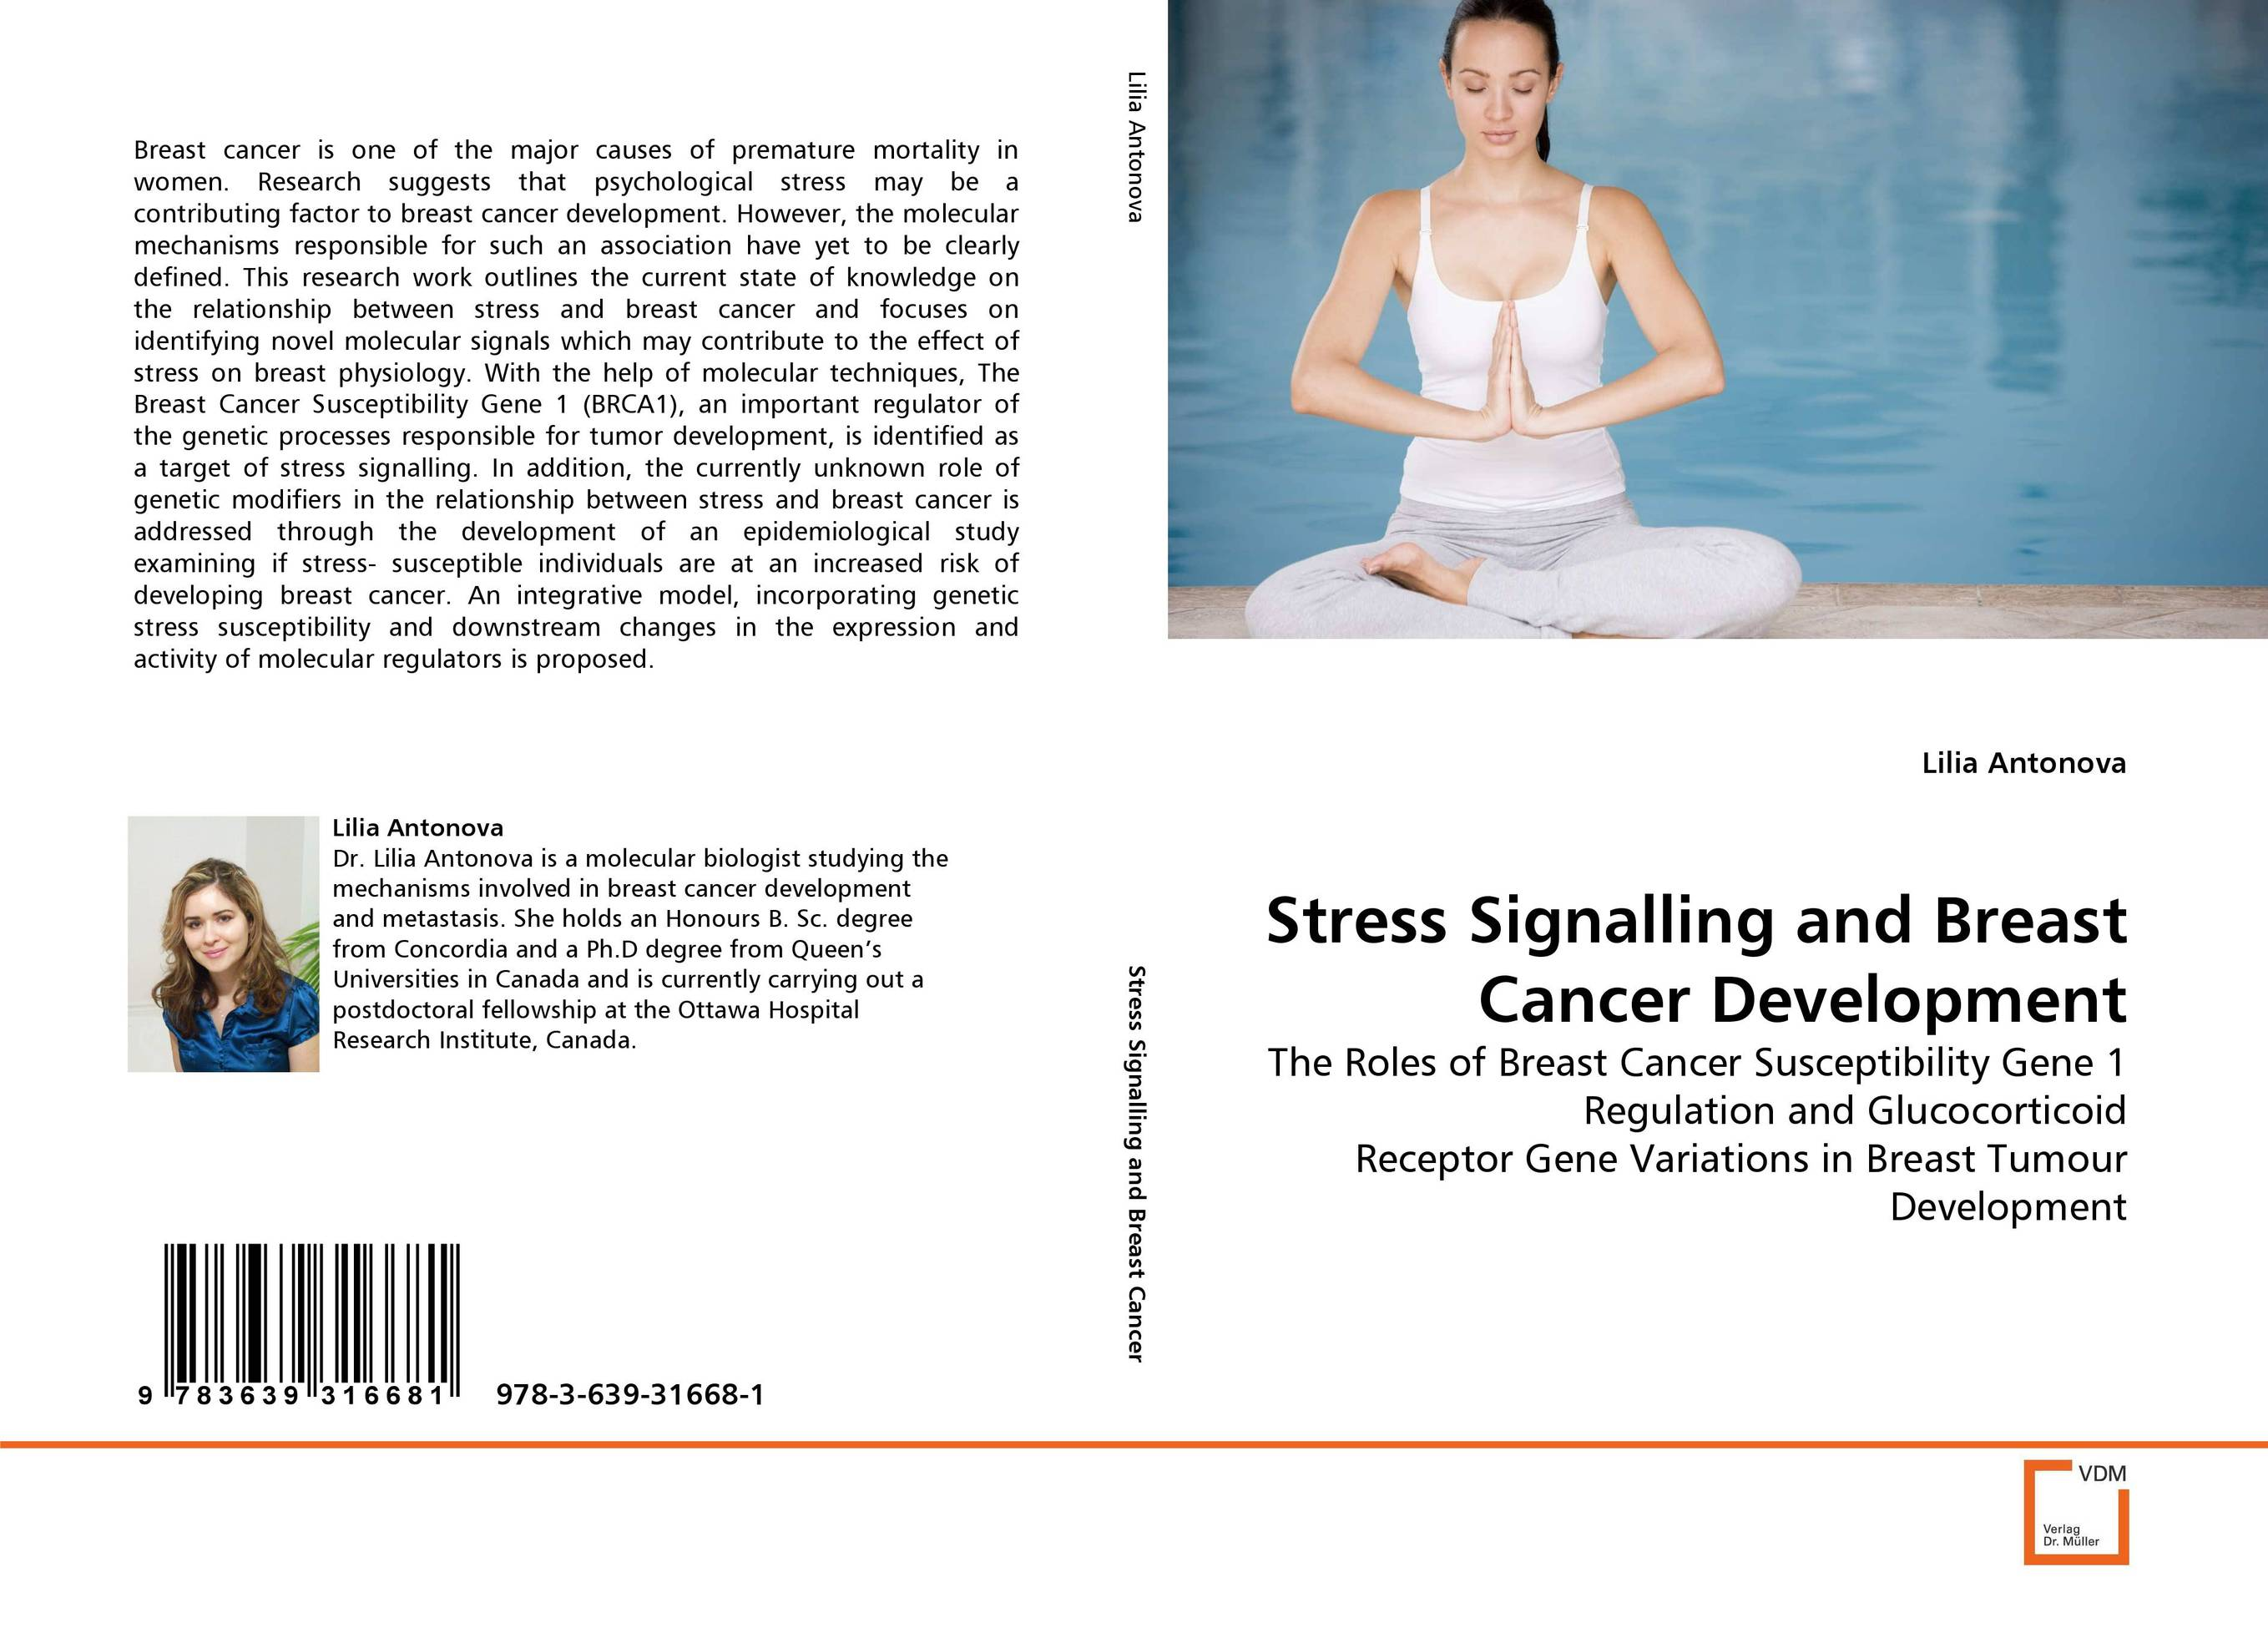 Stress Signalling and Breast Cancer Development viruses cell transformation and cancer 5